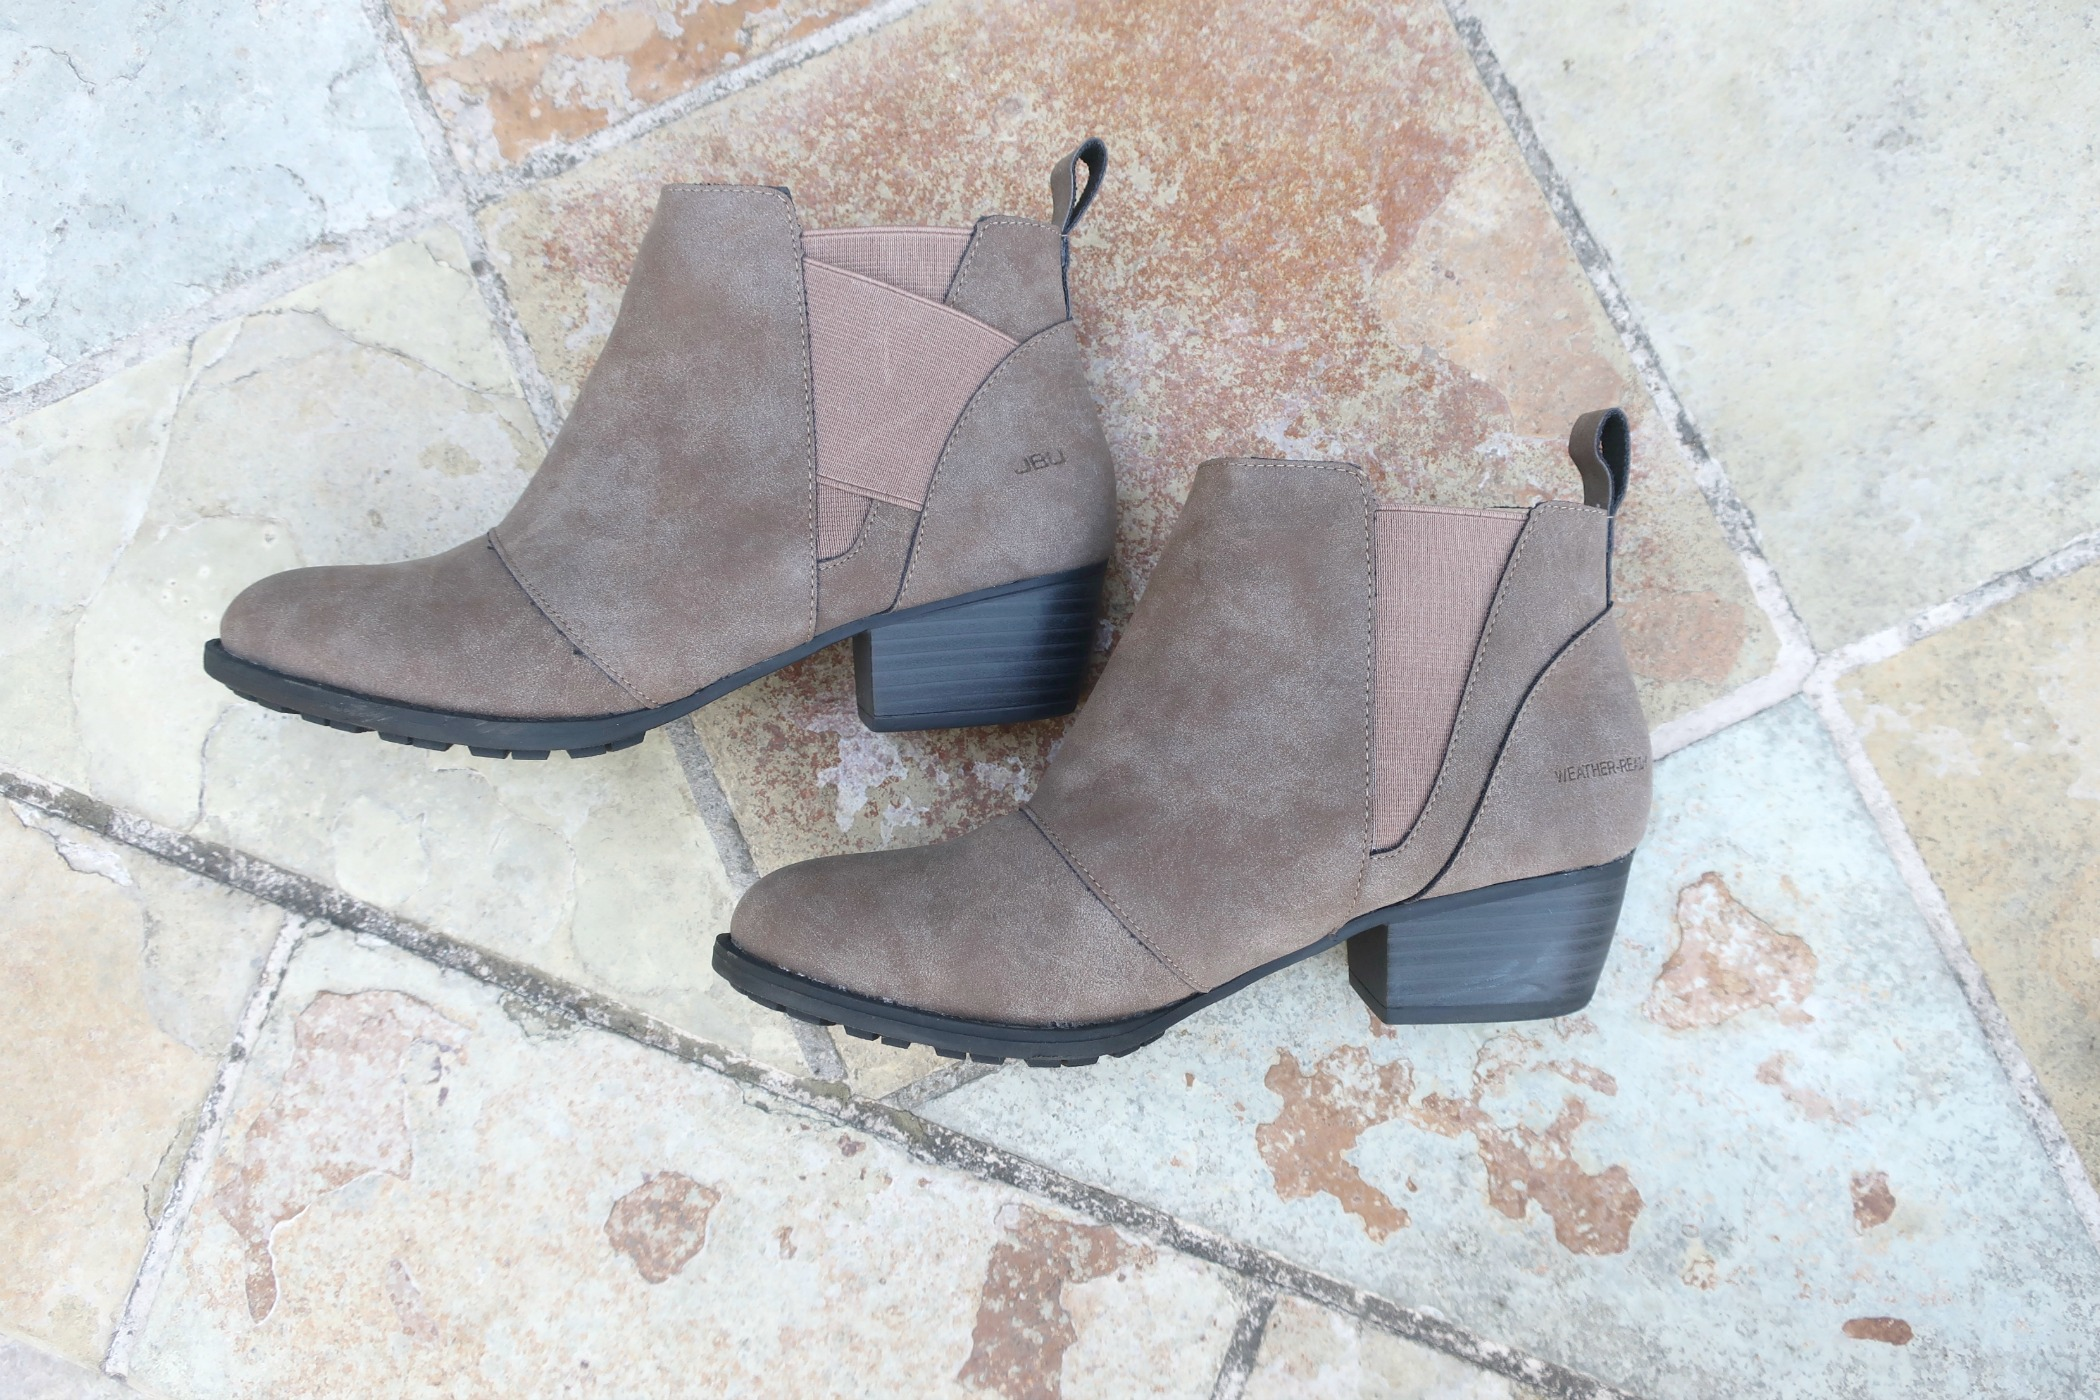 Jambu Footwear's versatile booties for fall 2019